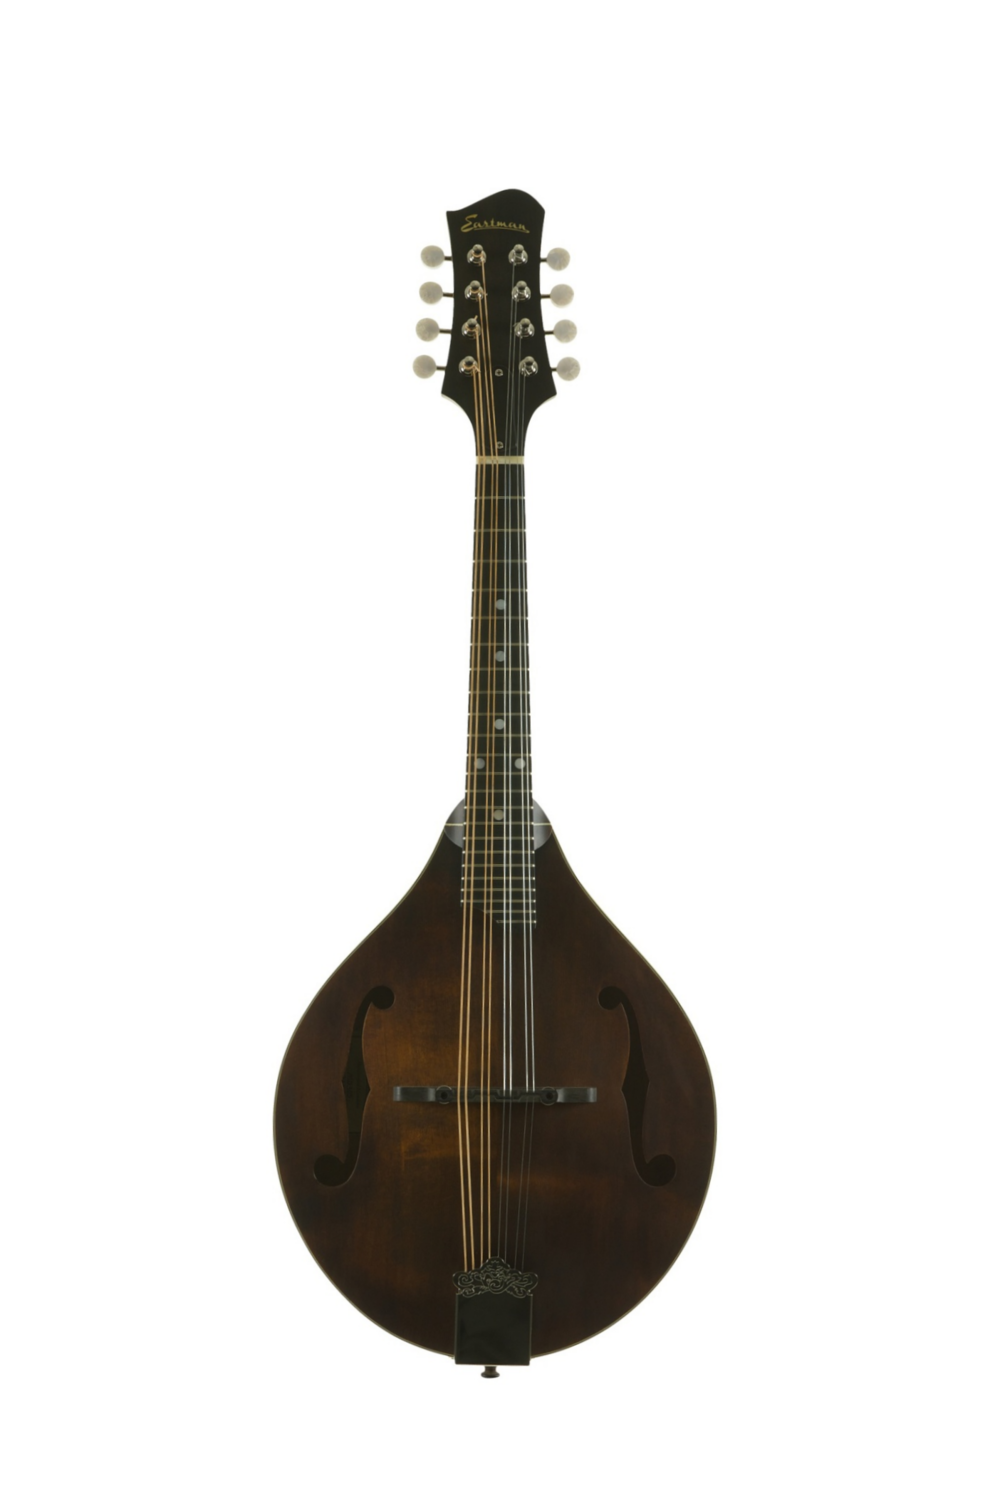 A-STYLE Based on the classic European mandolin design, Eastman A-Style Mandolins are favored by players of Celtic music and other traditional European styles. Traditionally crafted of premium tonewoods and lacquer-finished.